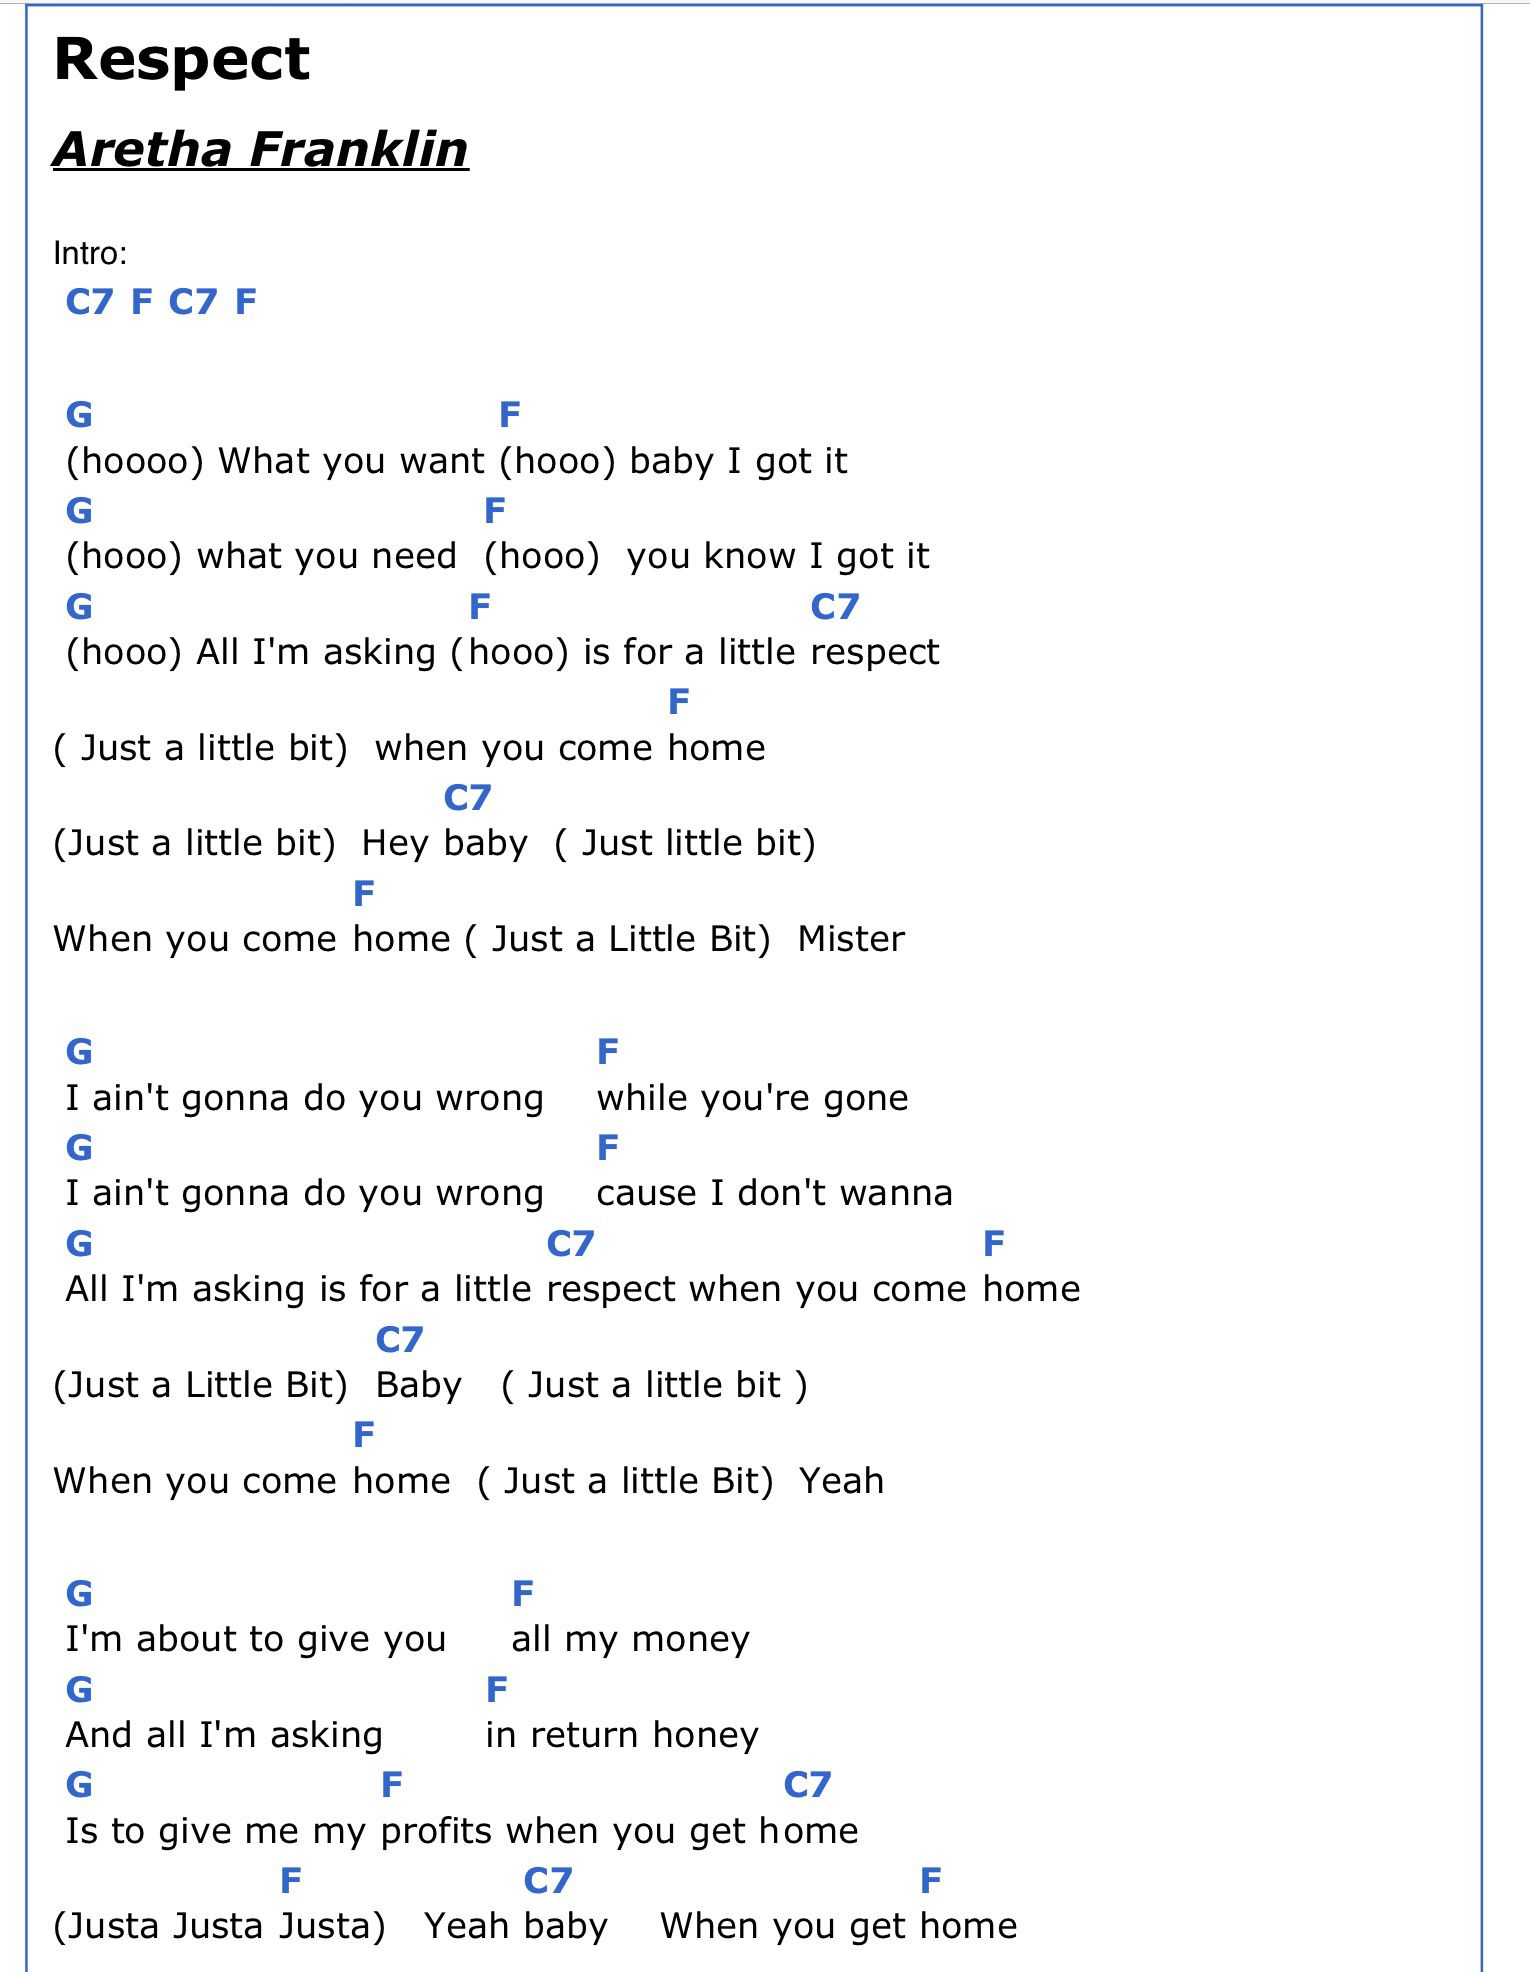 Respect 1 2 With Images Lyrics And Chords Song Lyrics And